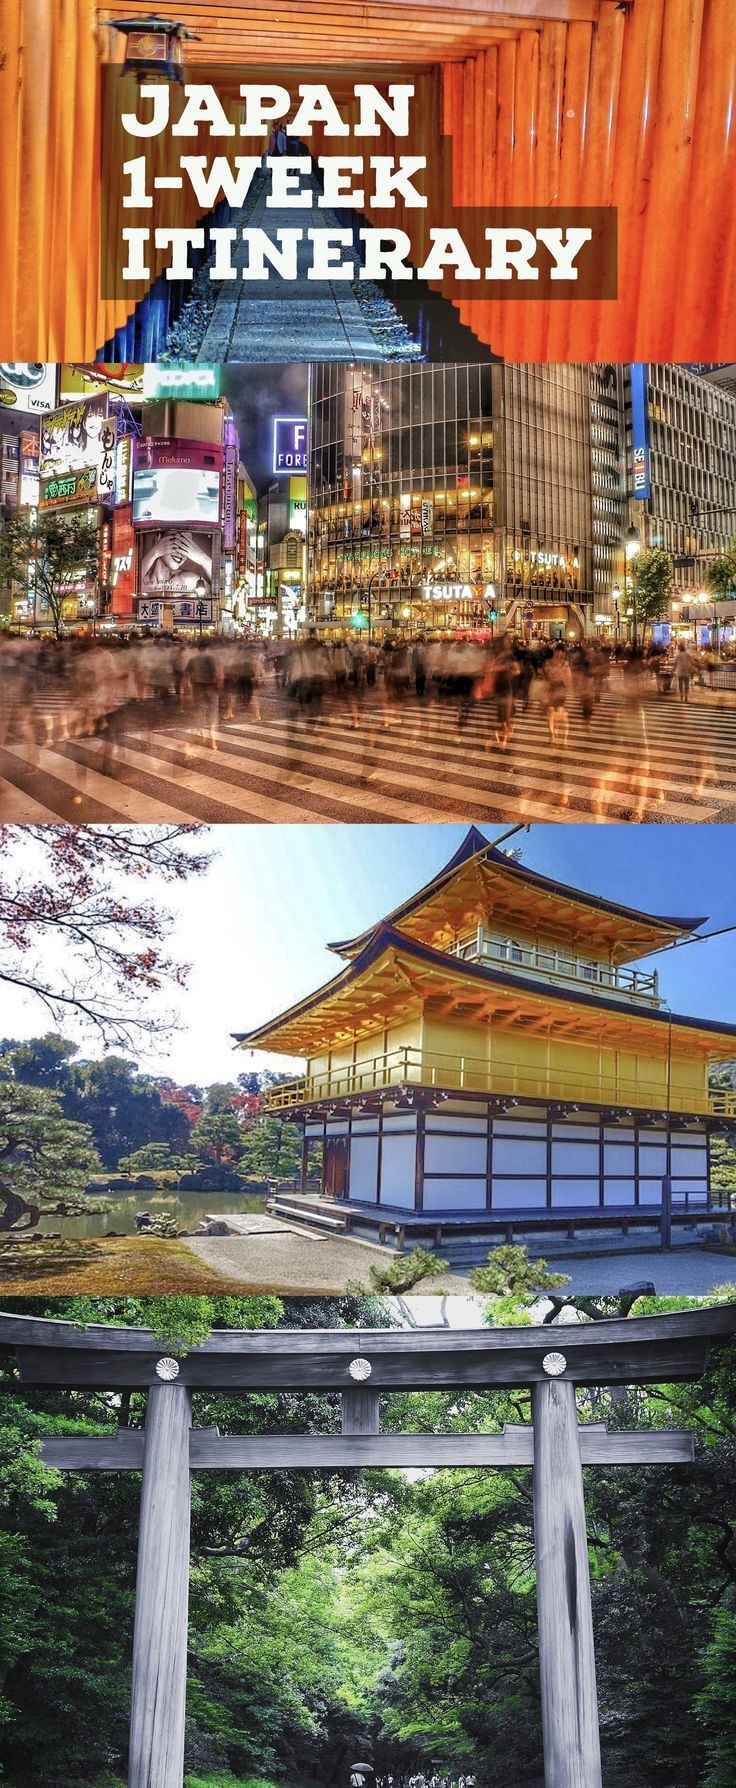 Explore the best of Japan travel guide in 1-week. See Tokyo, Kyoto, Osaka, Hiroshima, Nara, Hakone and more